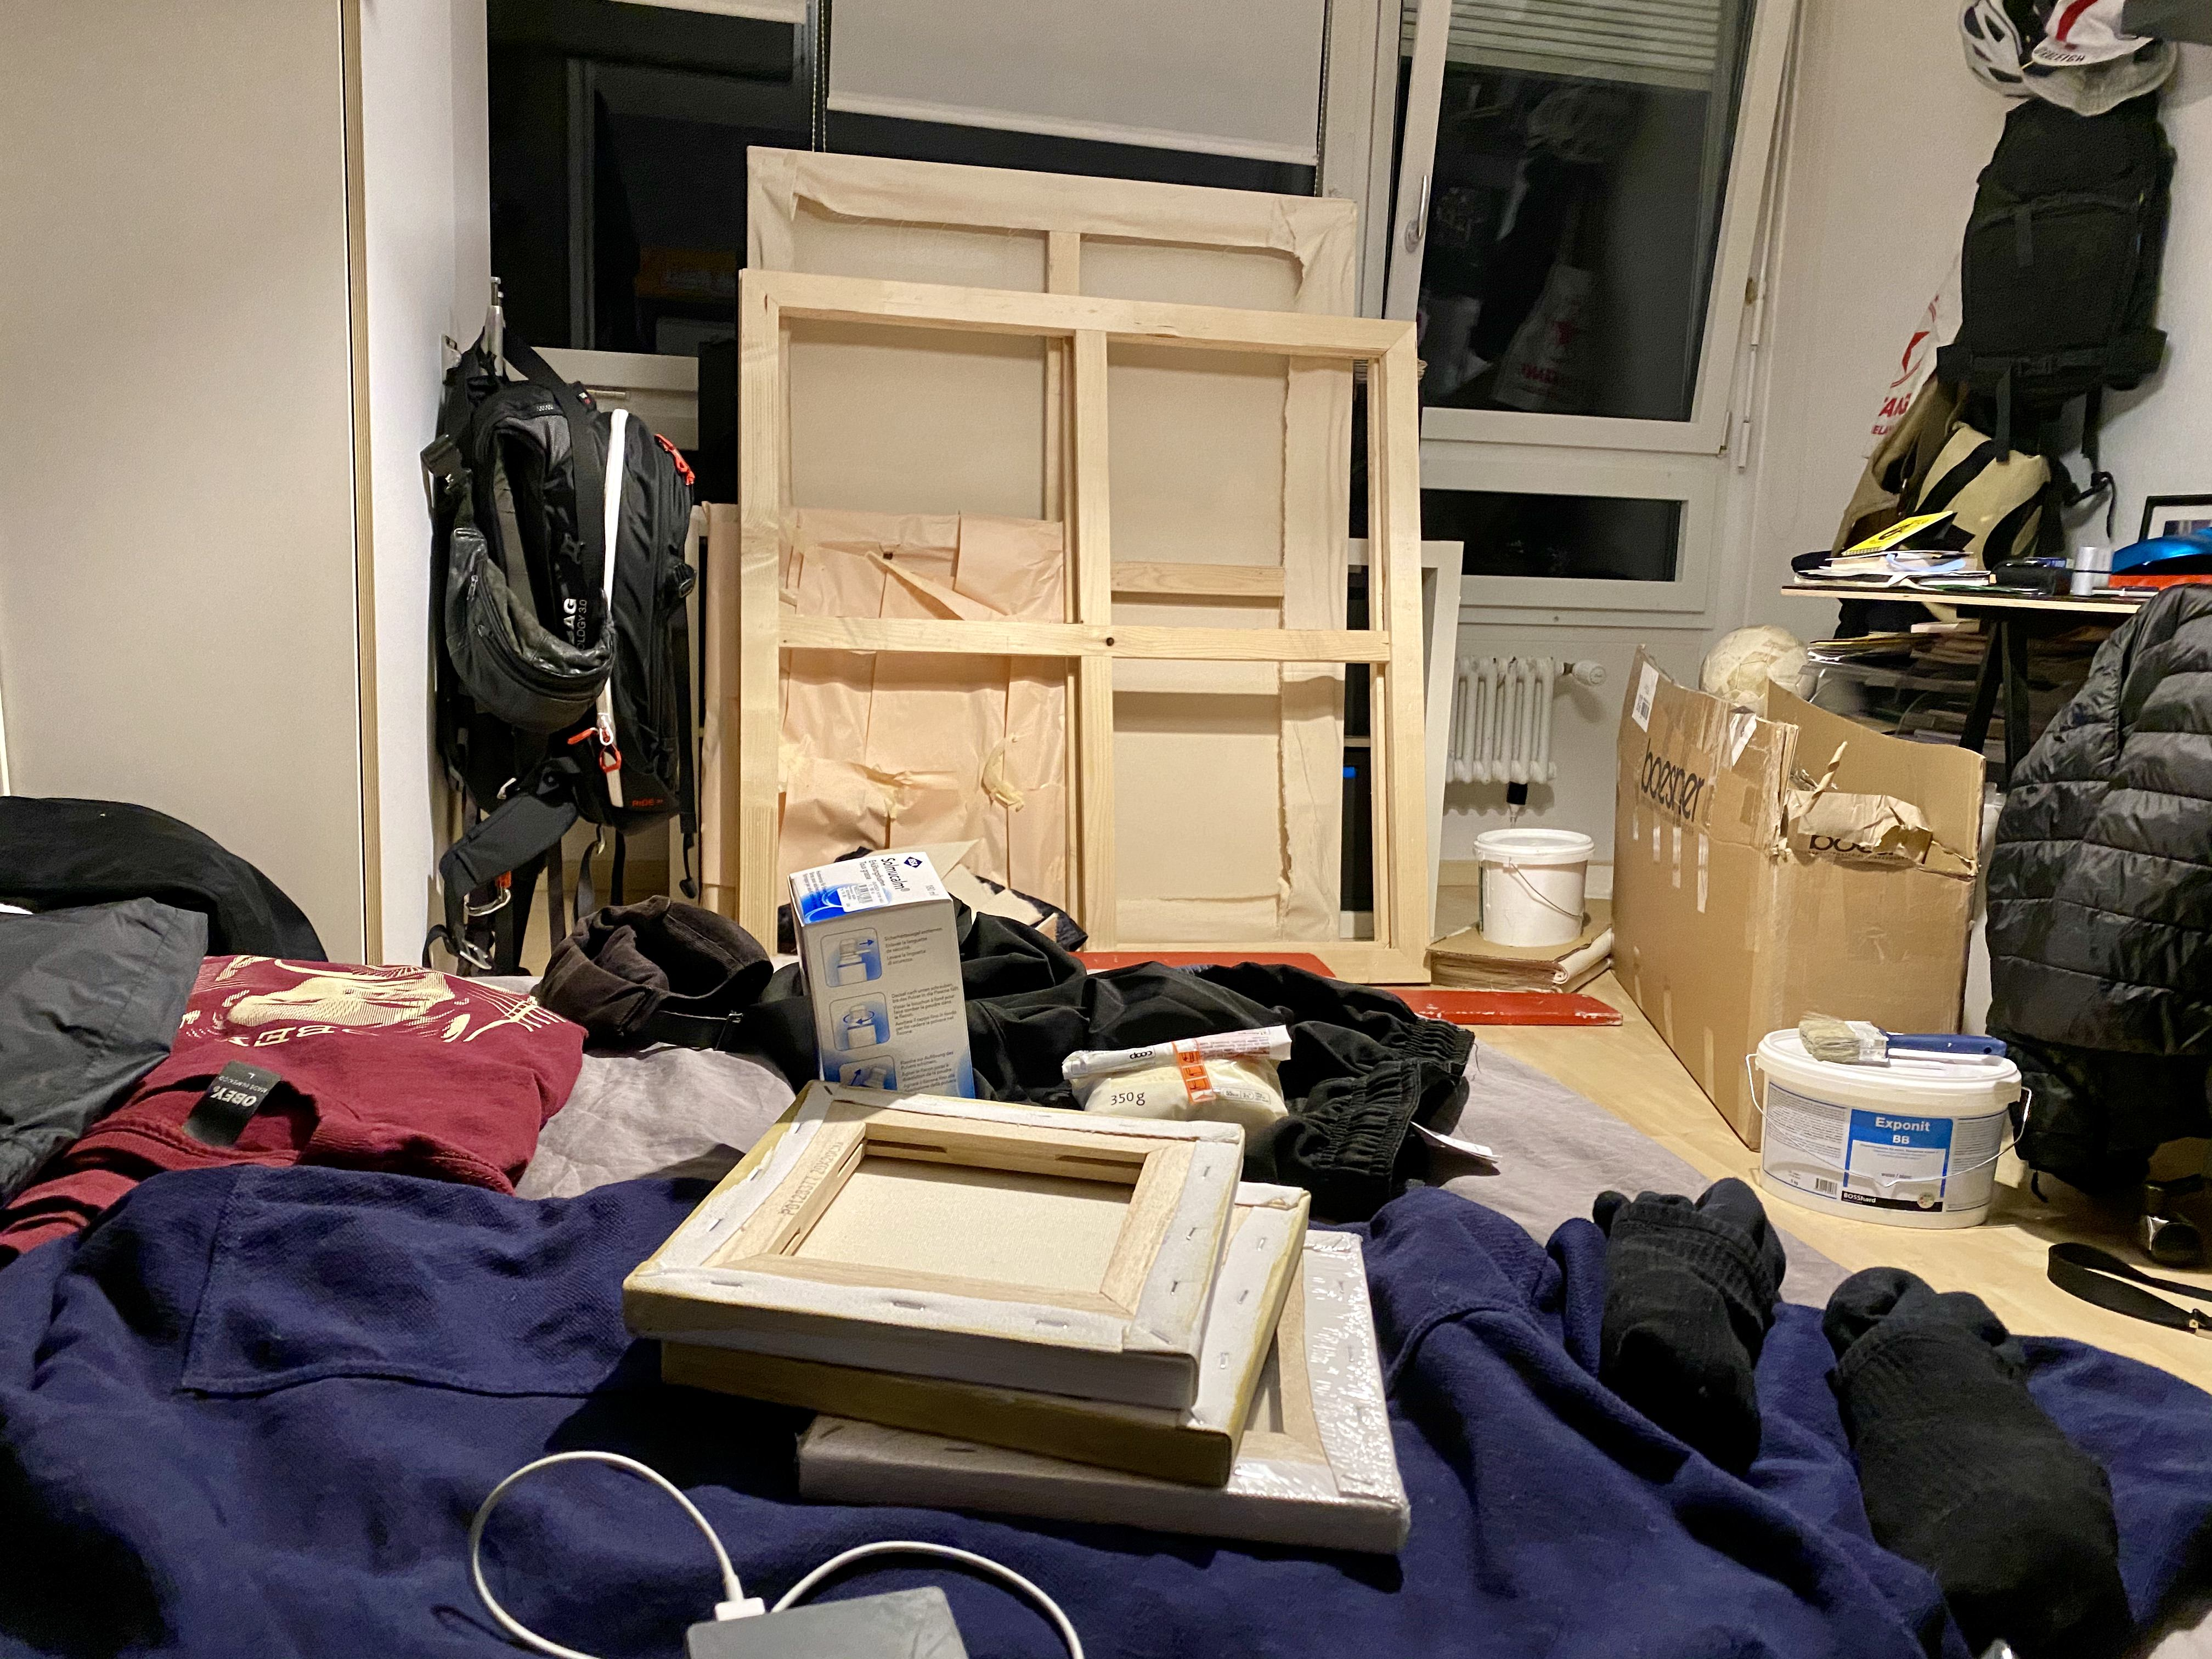 Canvases, frames and paint